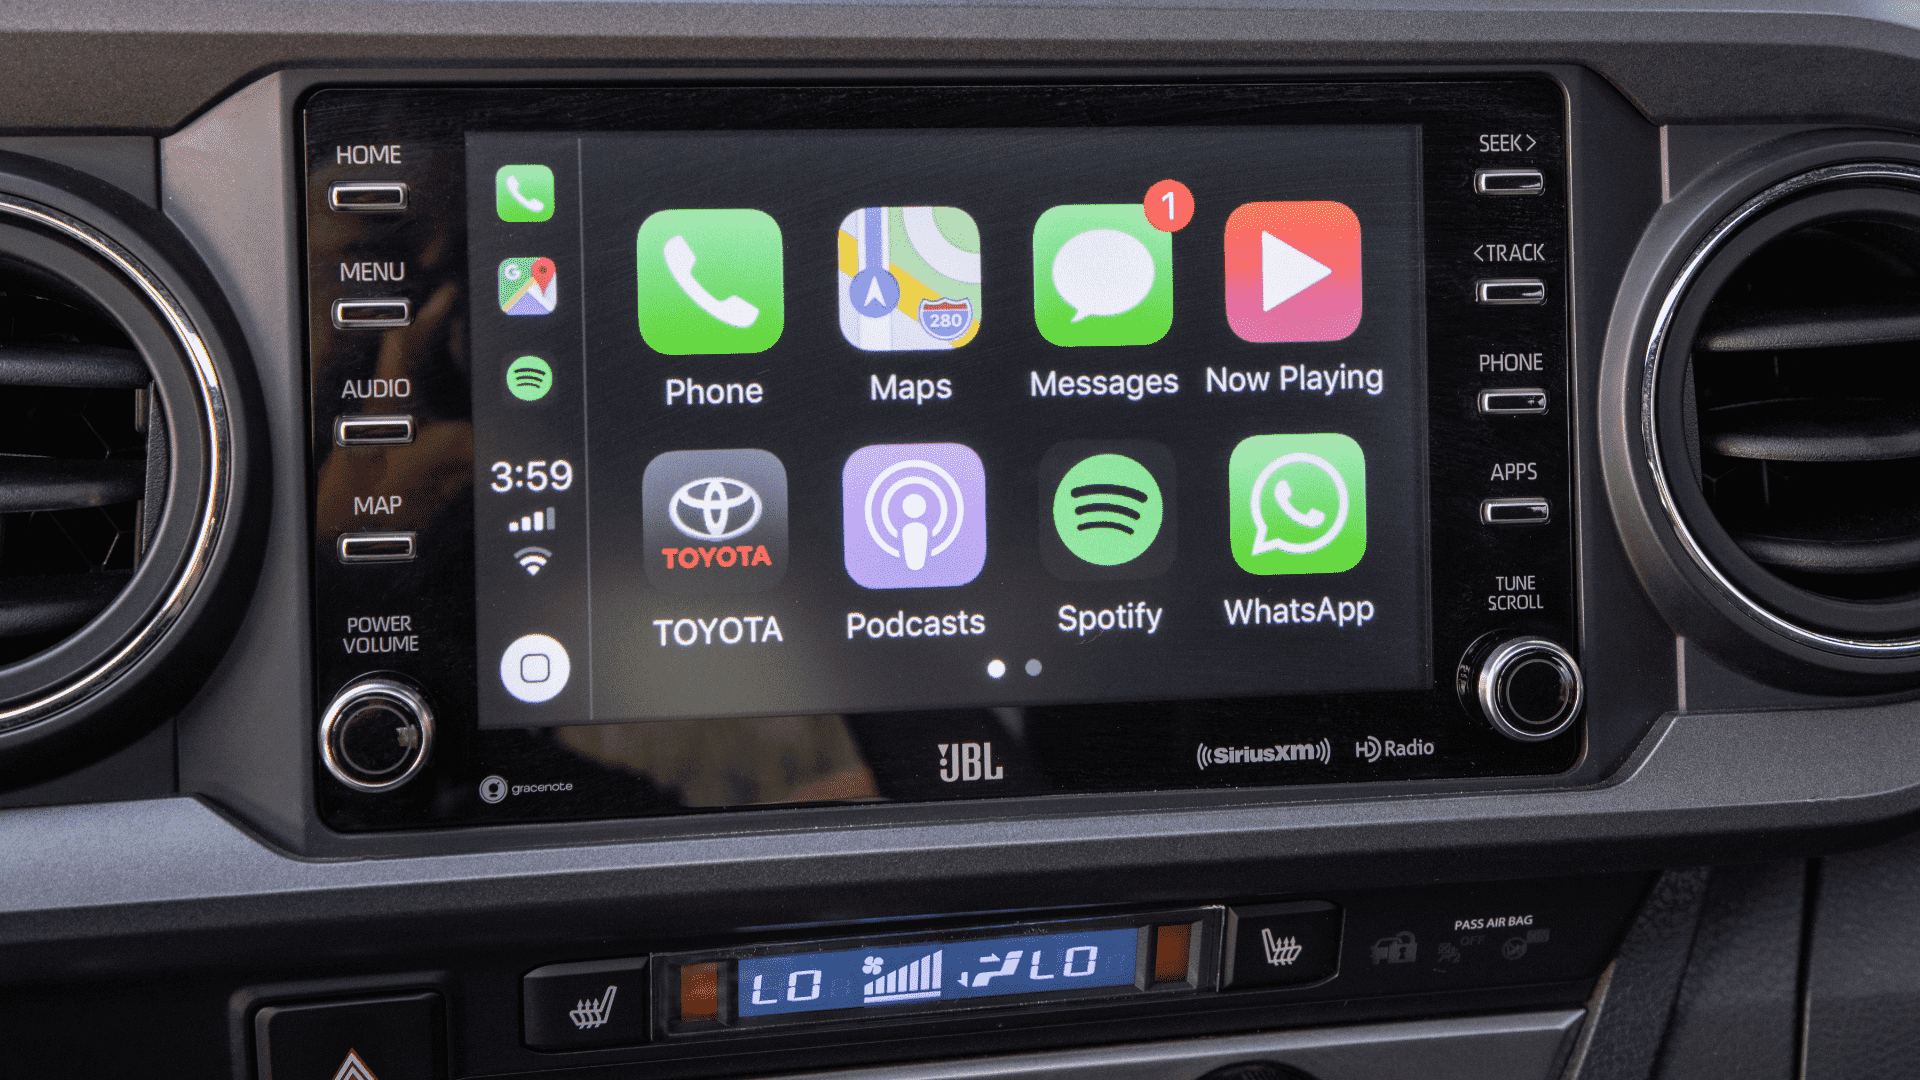 2020 Toyota Tacoma Apple CarPlay Infotainment Screen